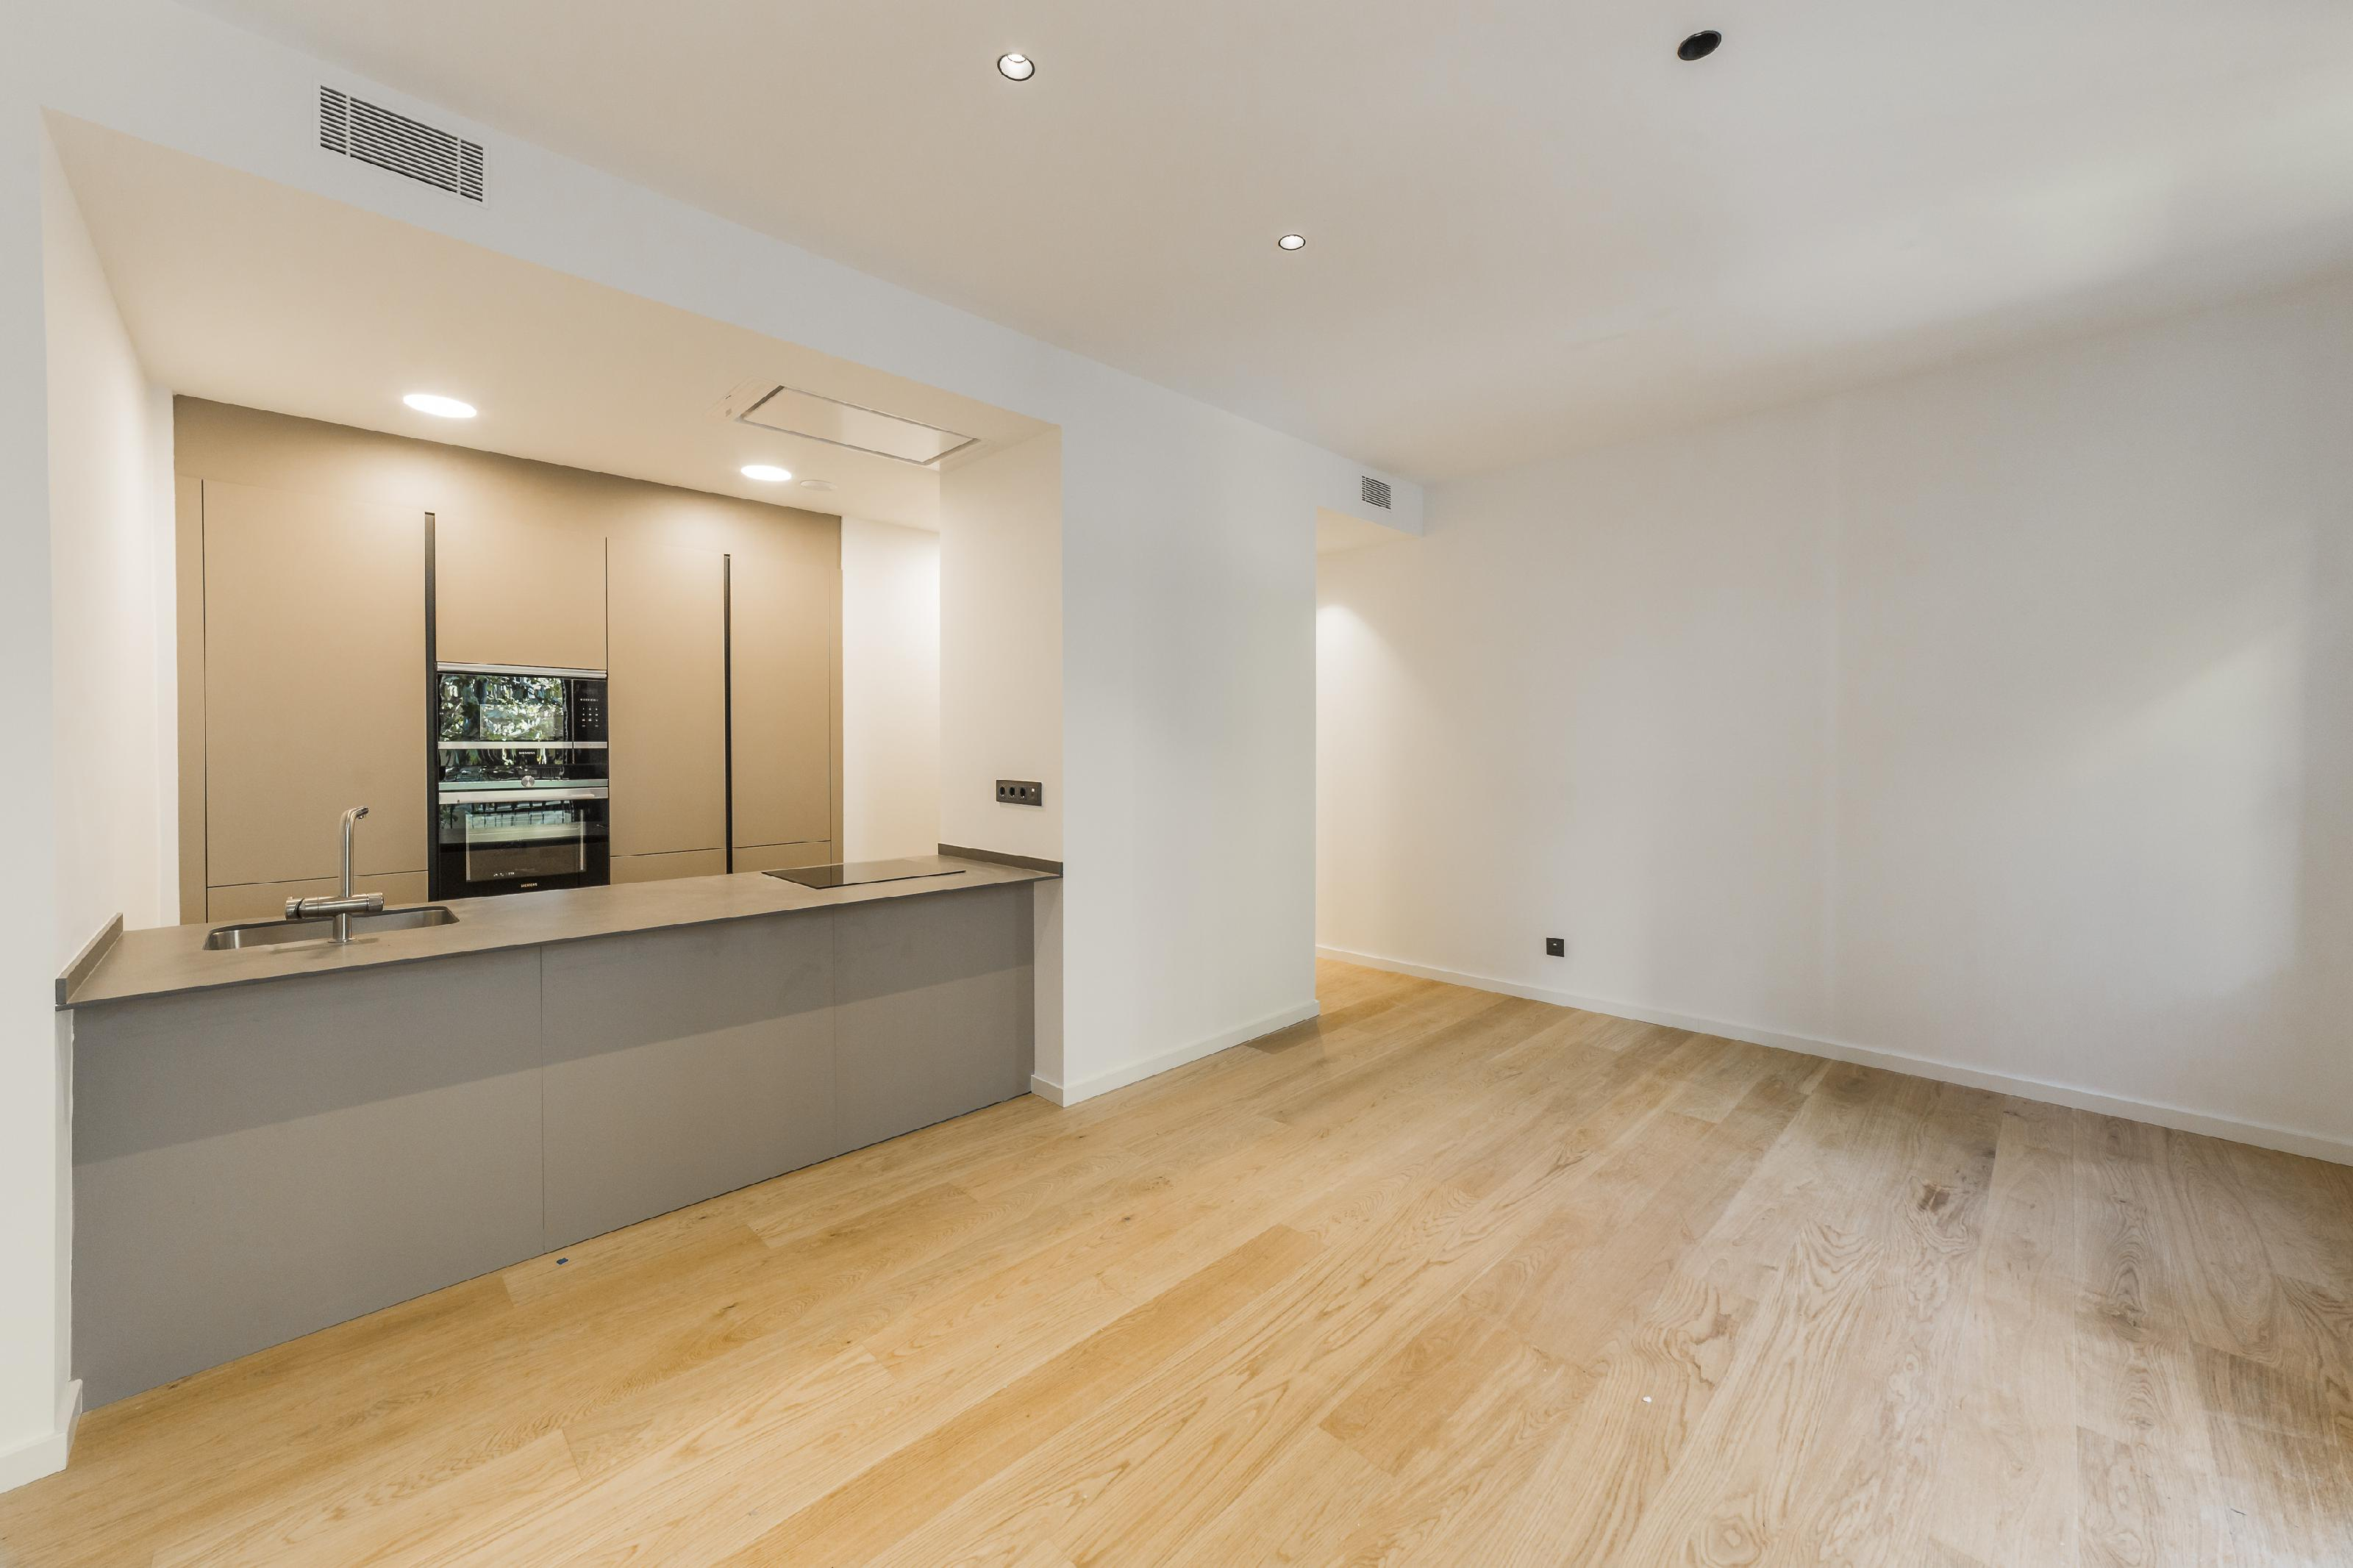 182176 Apartment for sale in Eixample, Old Left Eixample 1